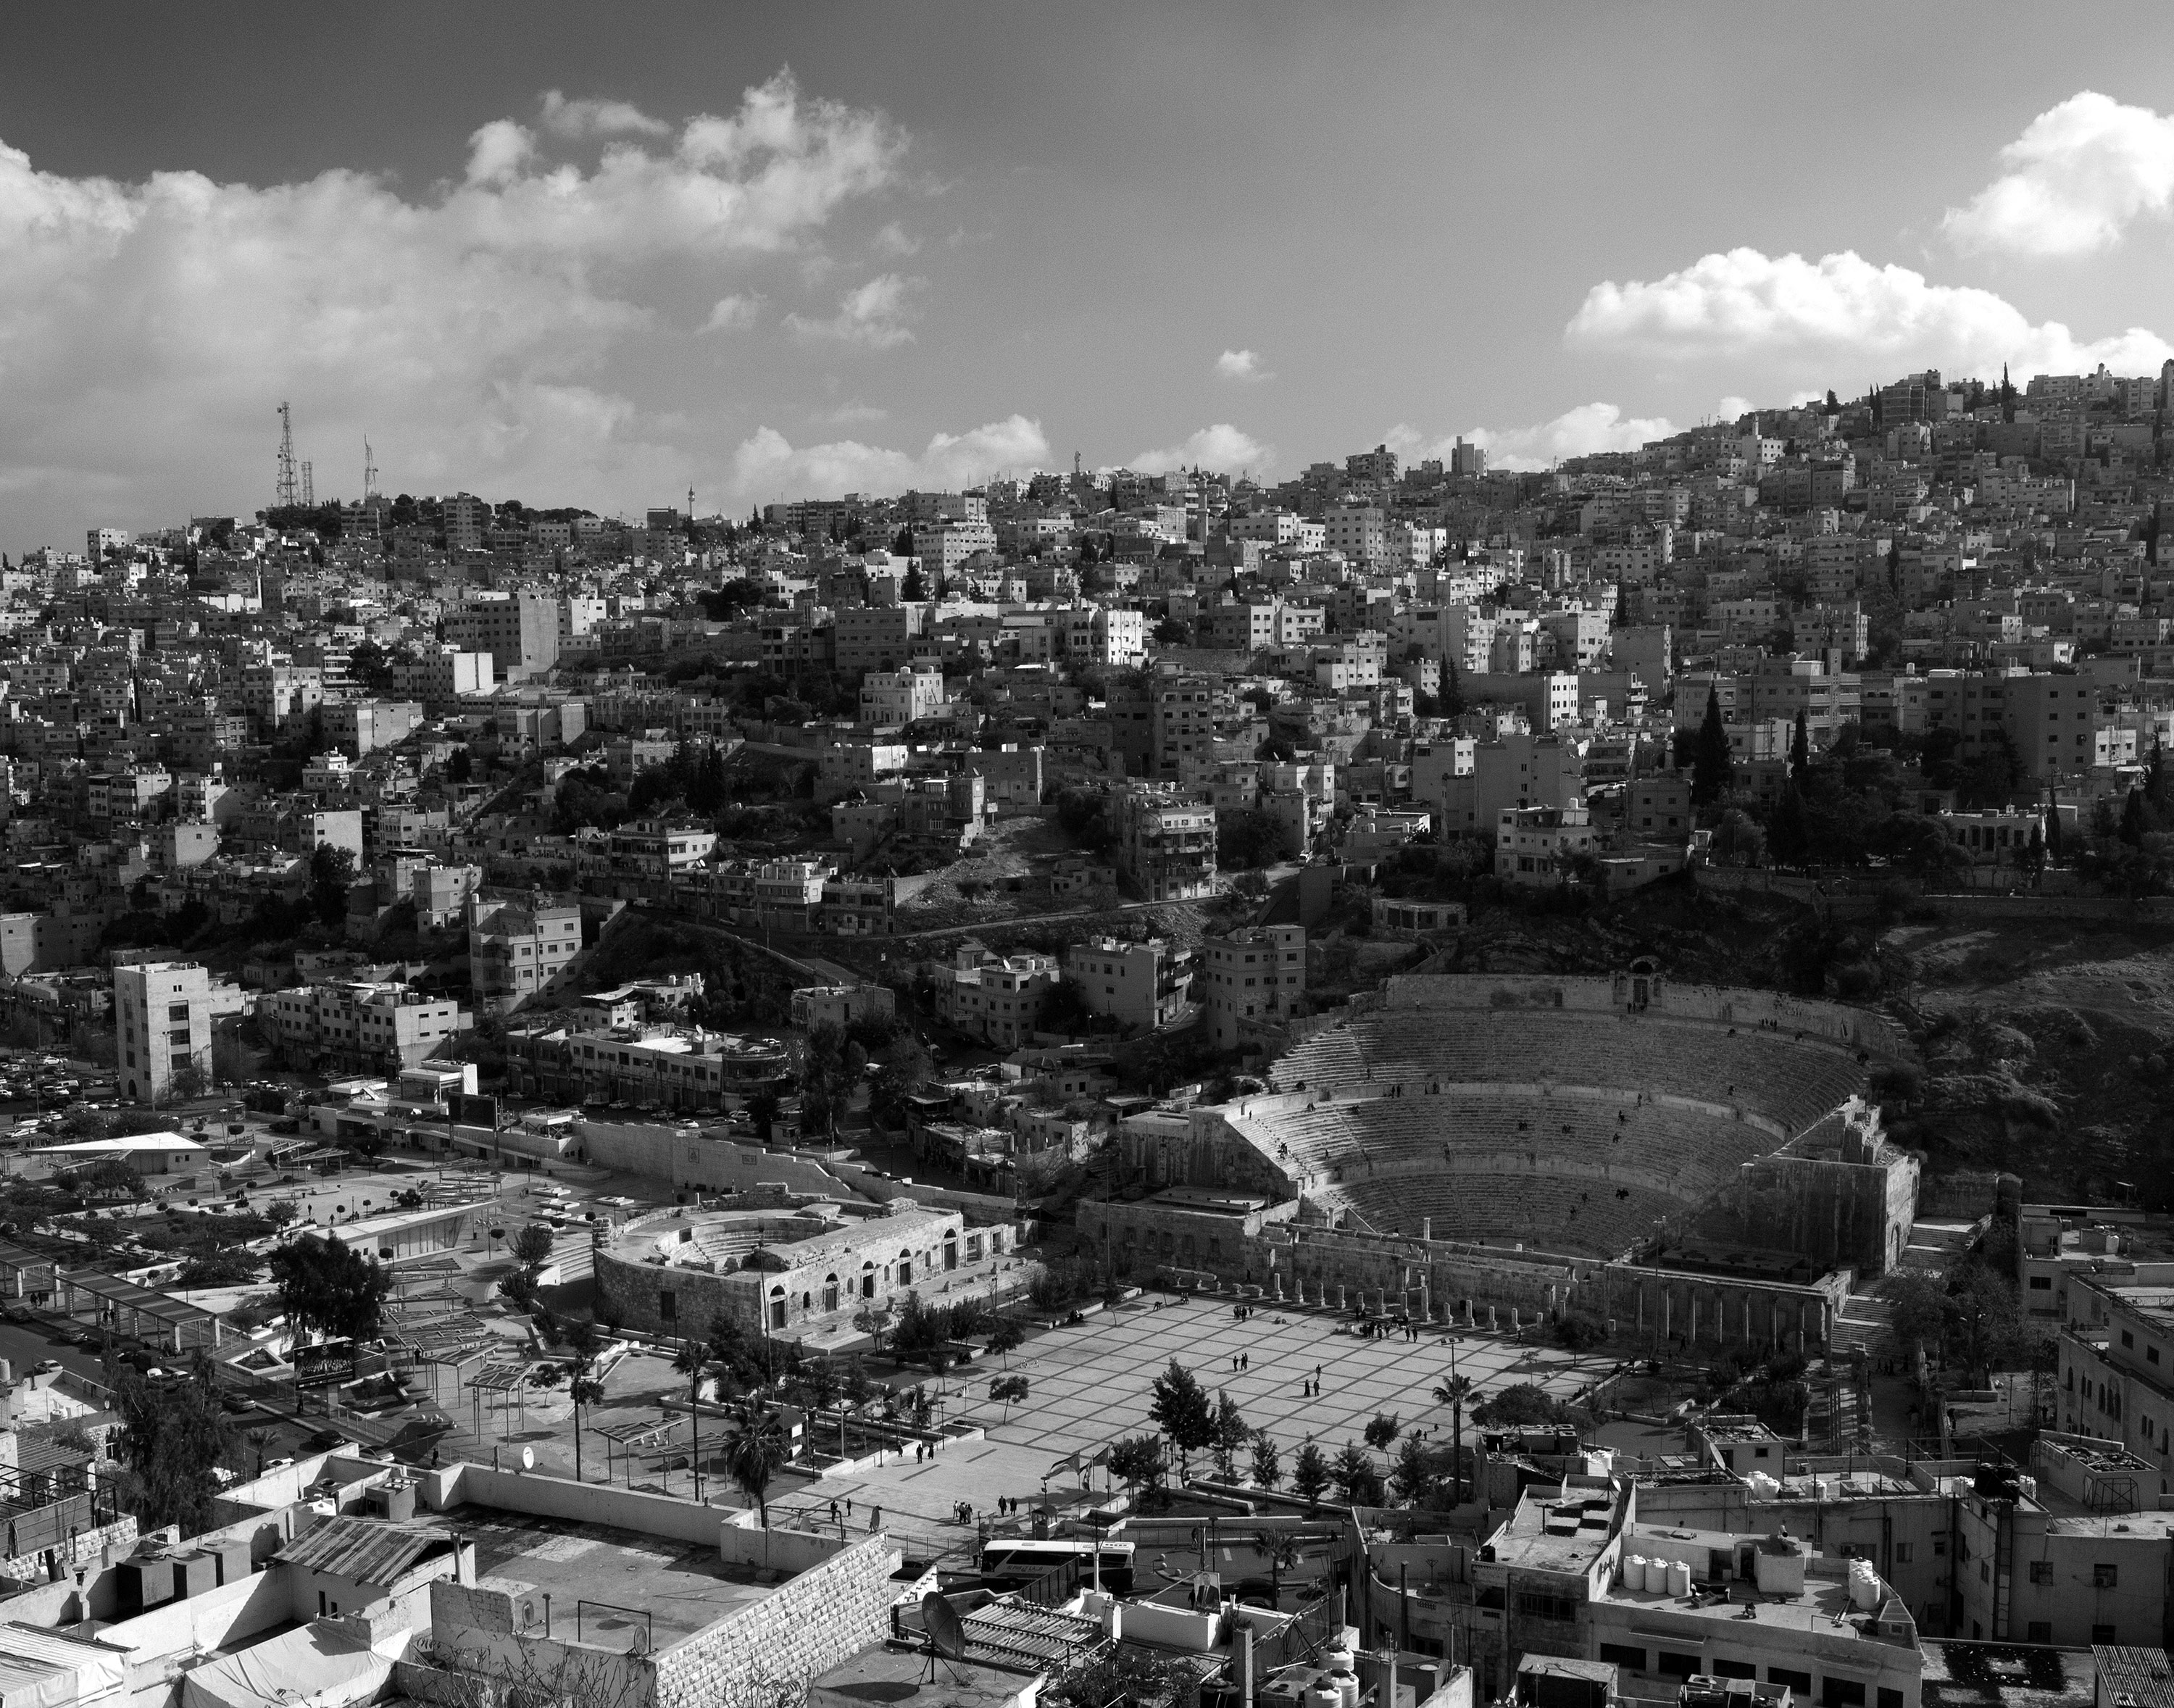 Looking south towards the Roman Theater from the Citadel in Amman, Jordan